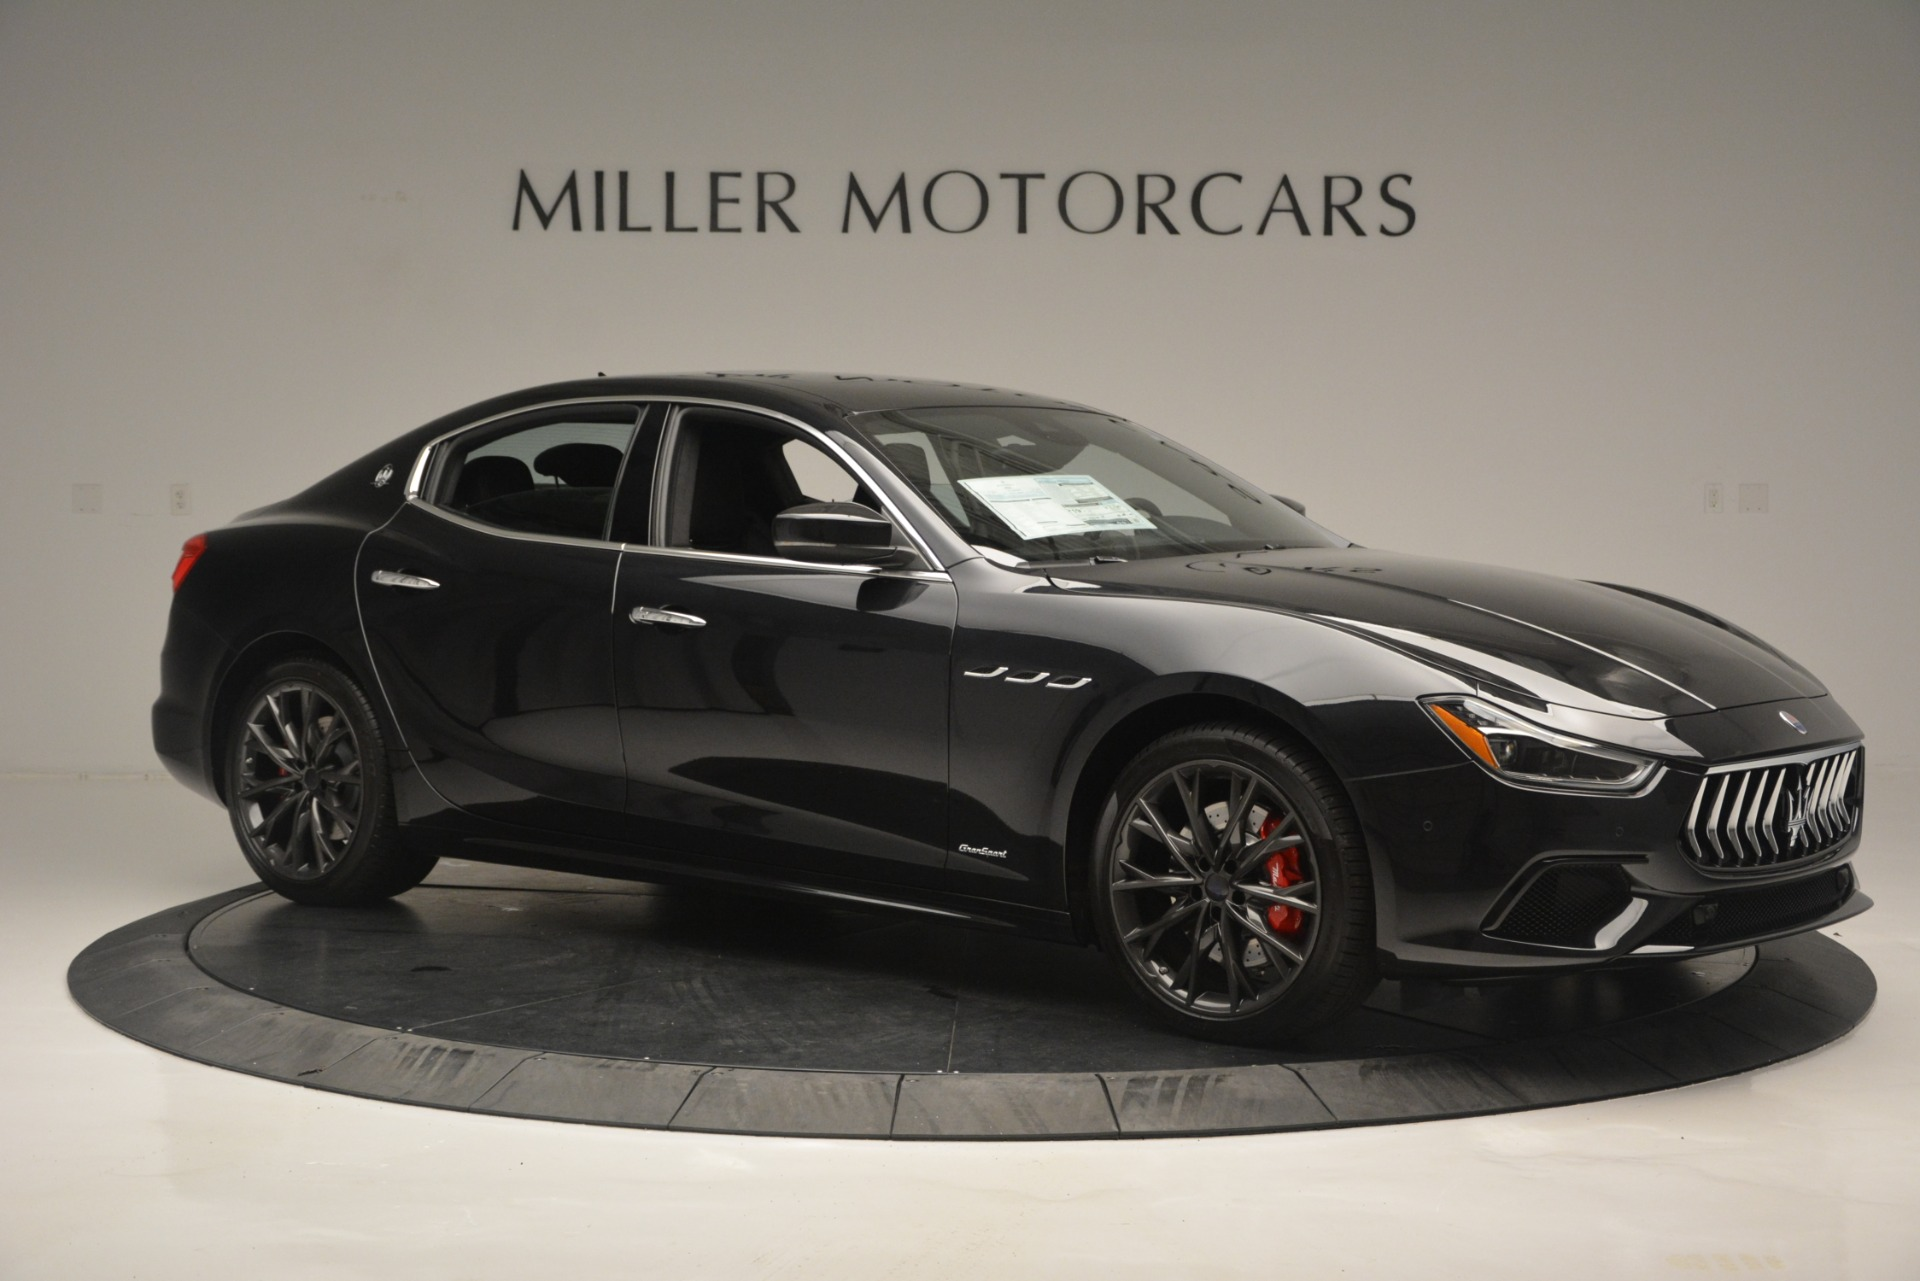 New 2019 Maserati Ghibli S Q4 GranSport For Sale In Westport, CT 2765_p10